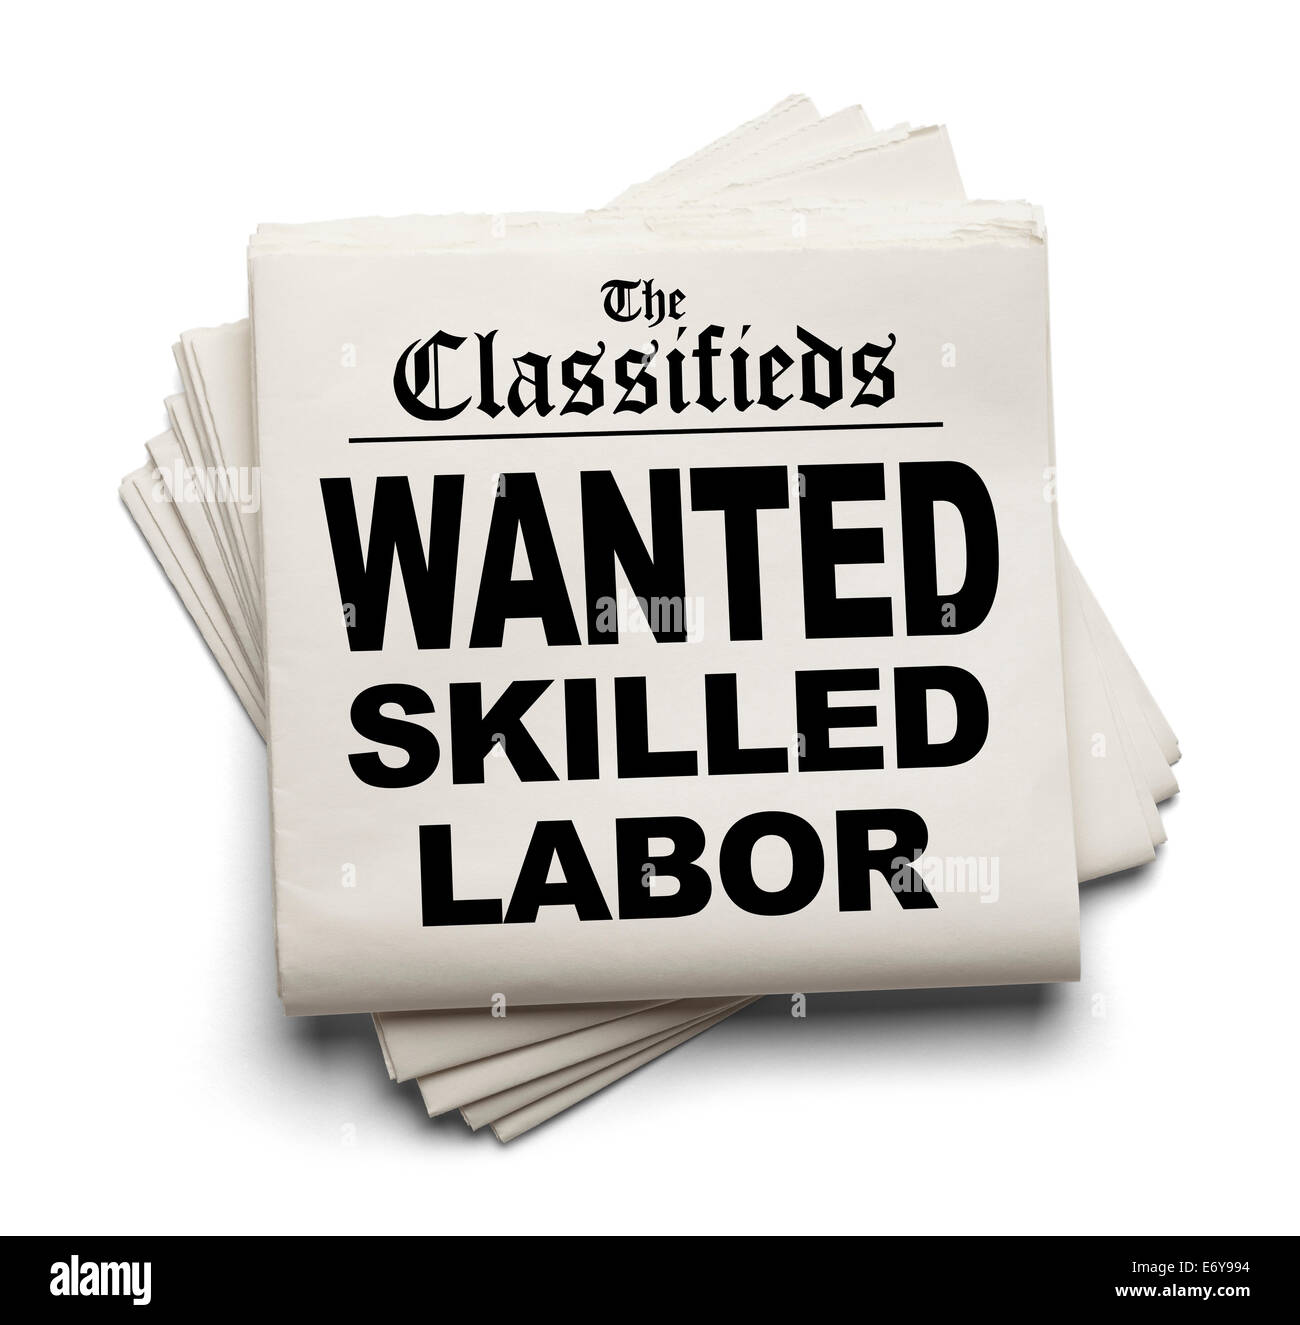 Newspaper Classifieds with Wanted Skilled Labor Headline Isolated on White Background. - Stock Image